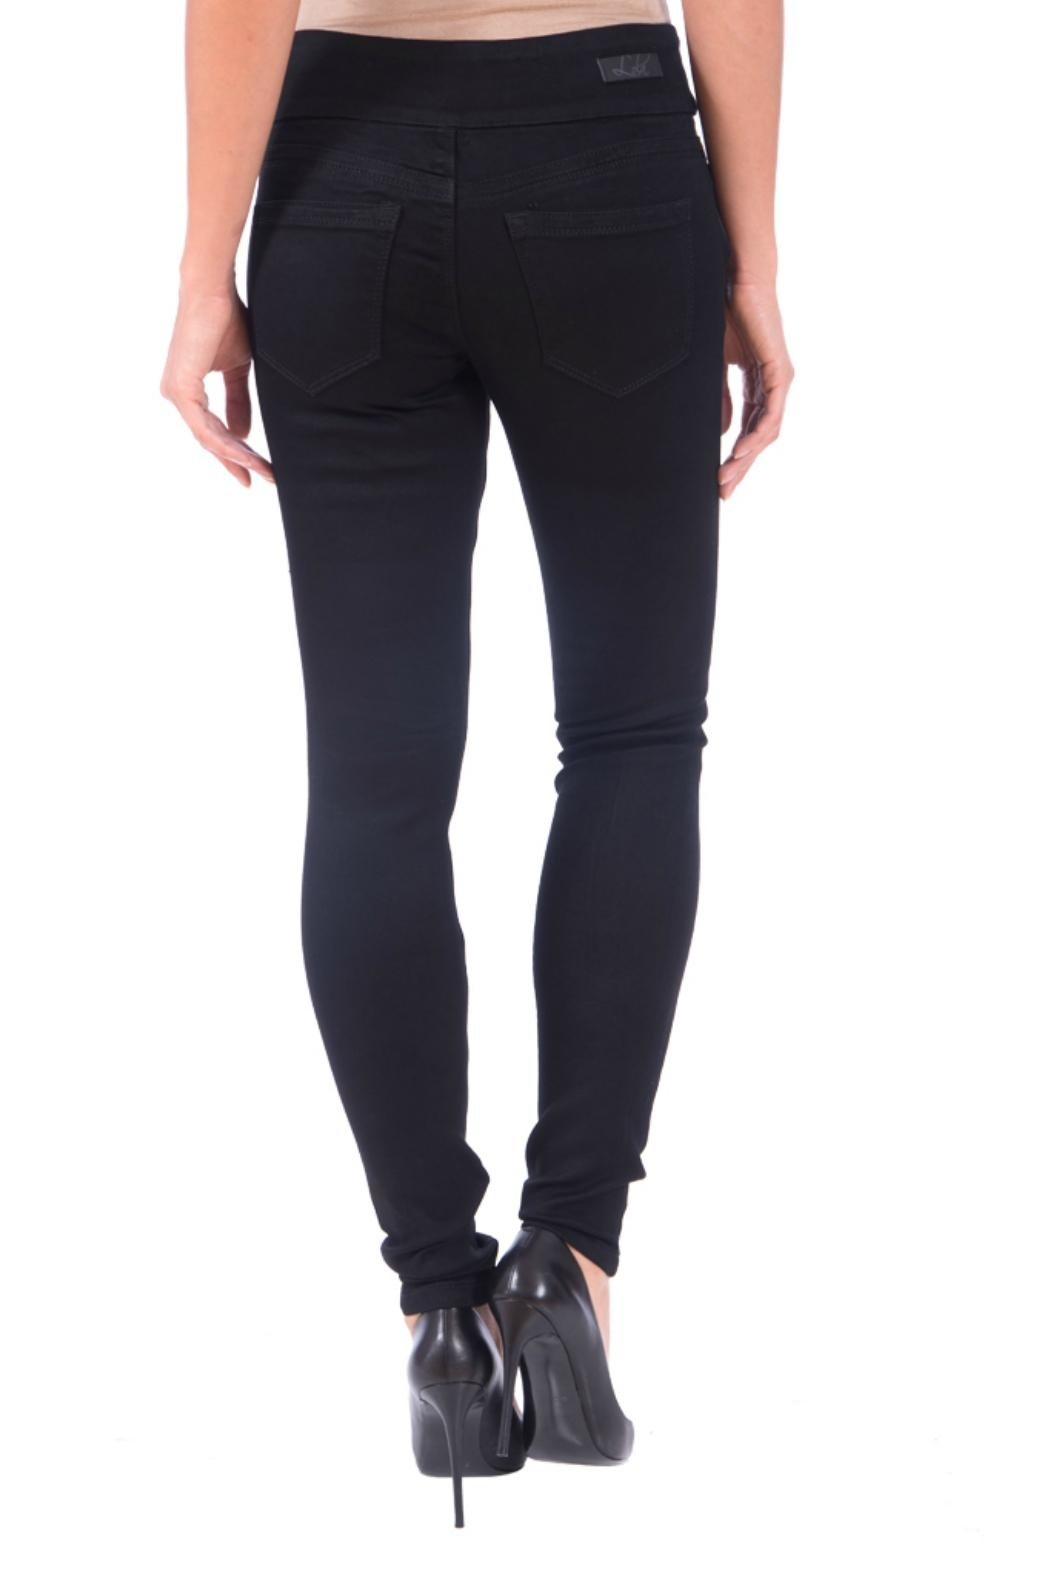 Lola Jeans Anna Pull On  Jeans - Front Full Image